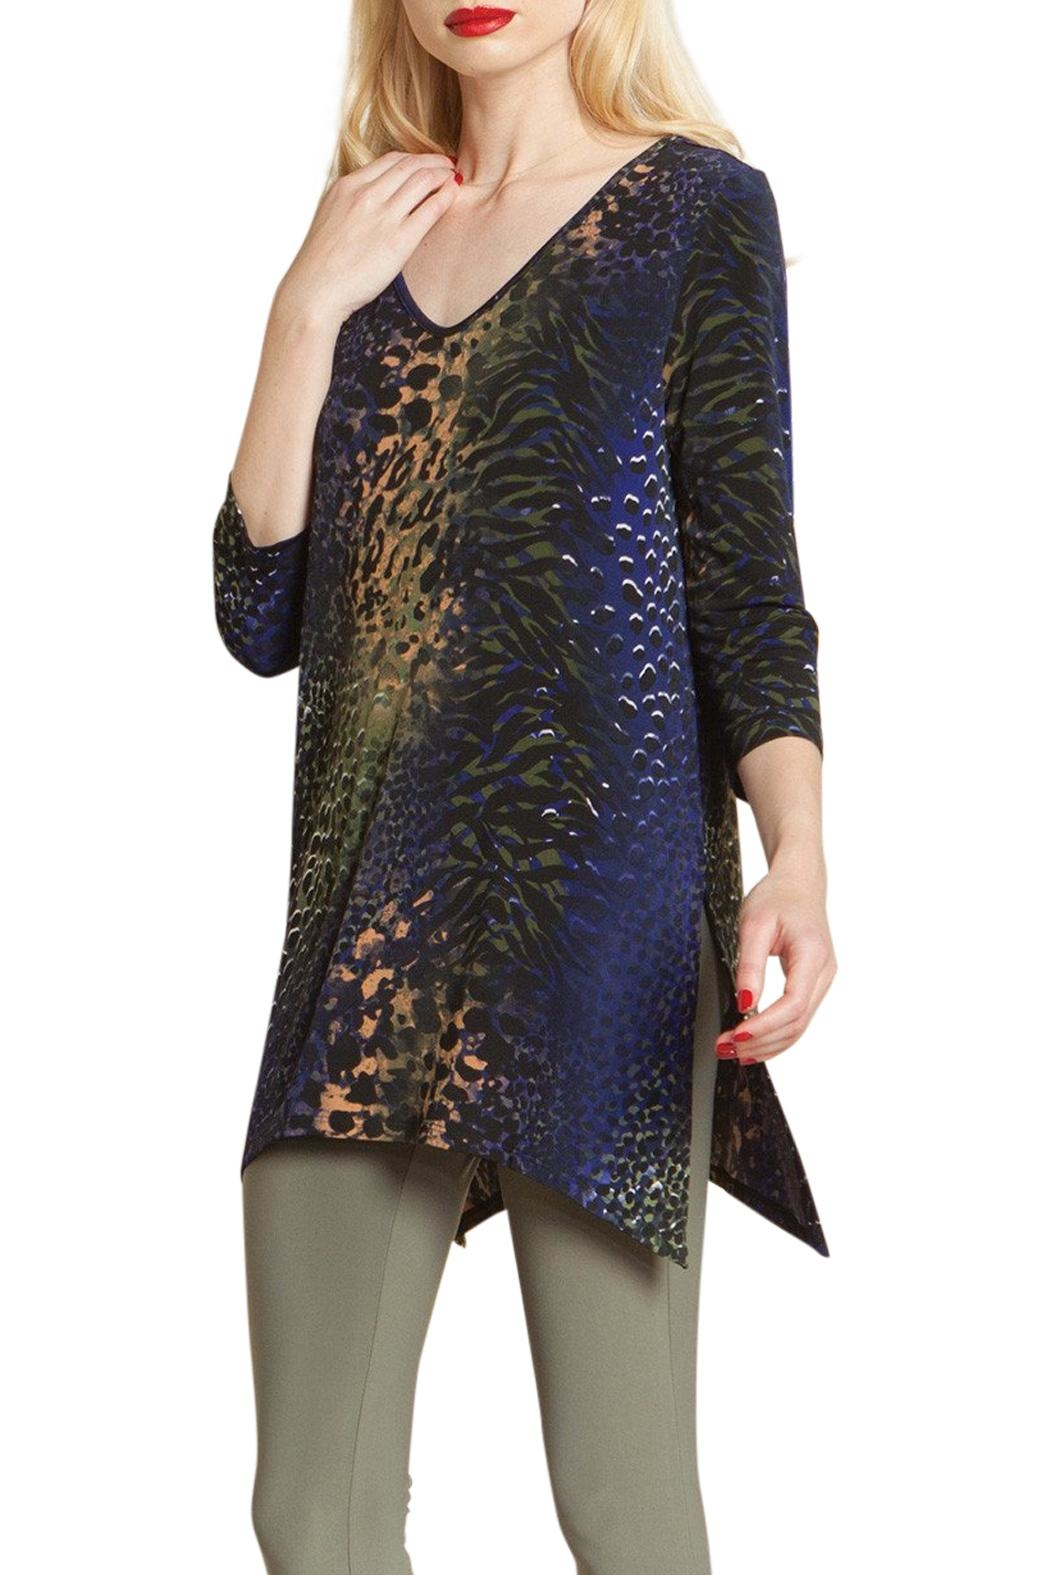 Clara Sunwoo Side Slit Tunic Top - Main Image